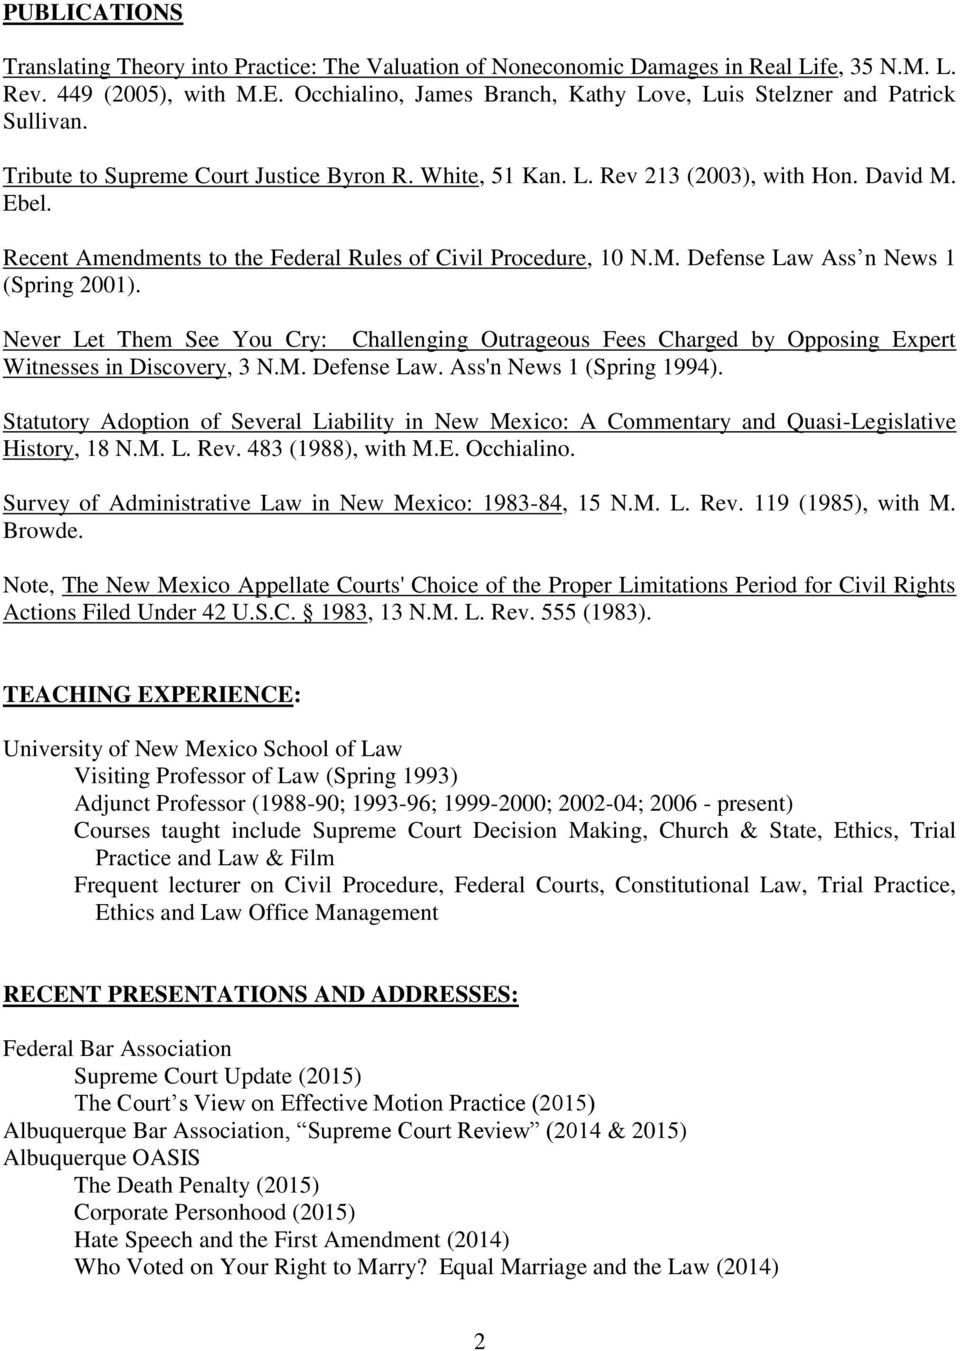 Recent Amendments to the Federal Rules of Civil Procedure, 10 N.M. Defense Law Ass n News 1 (Spring 2001).